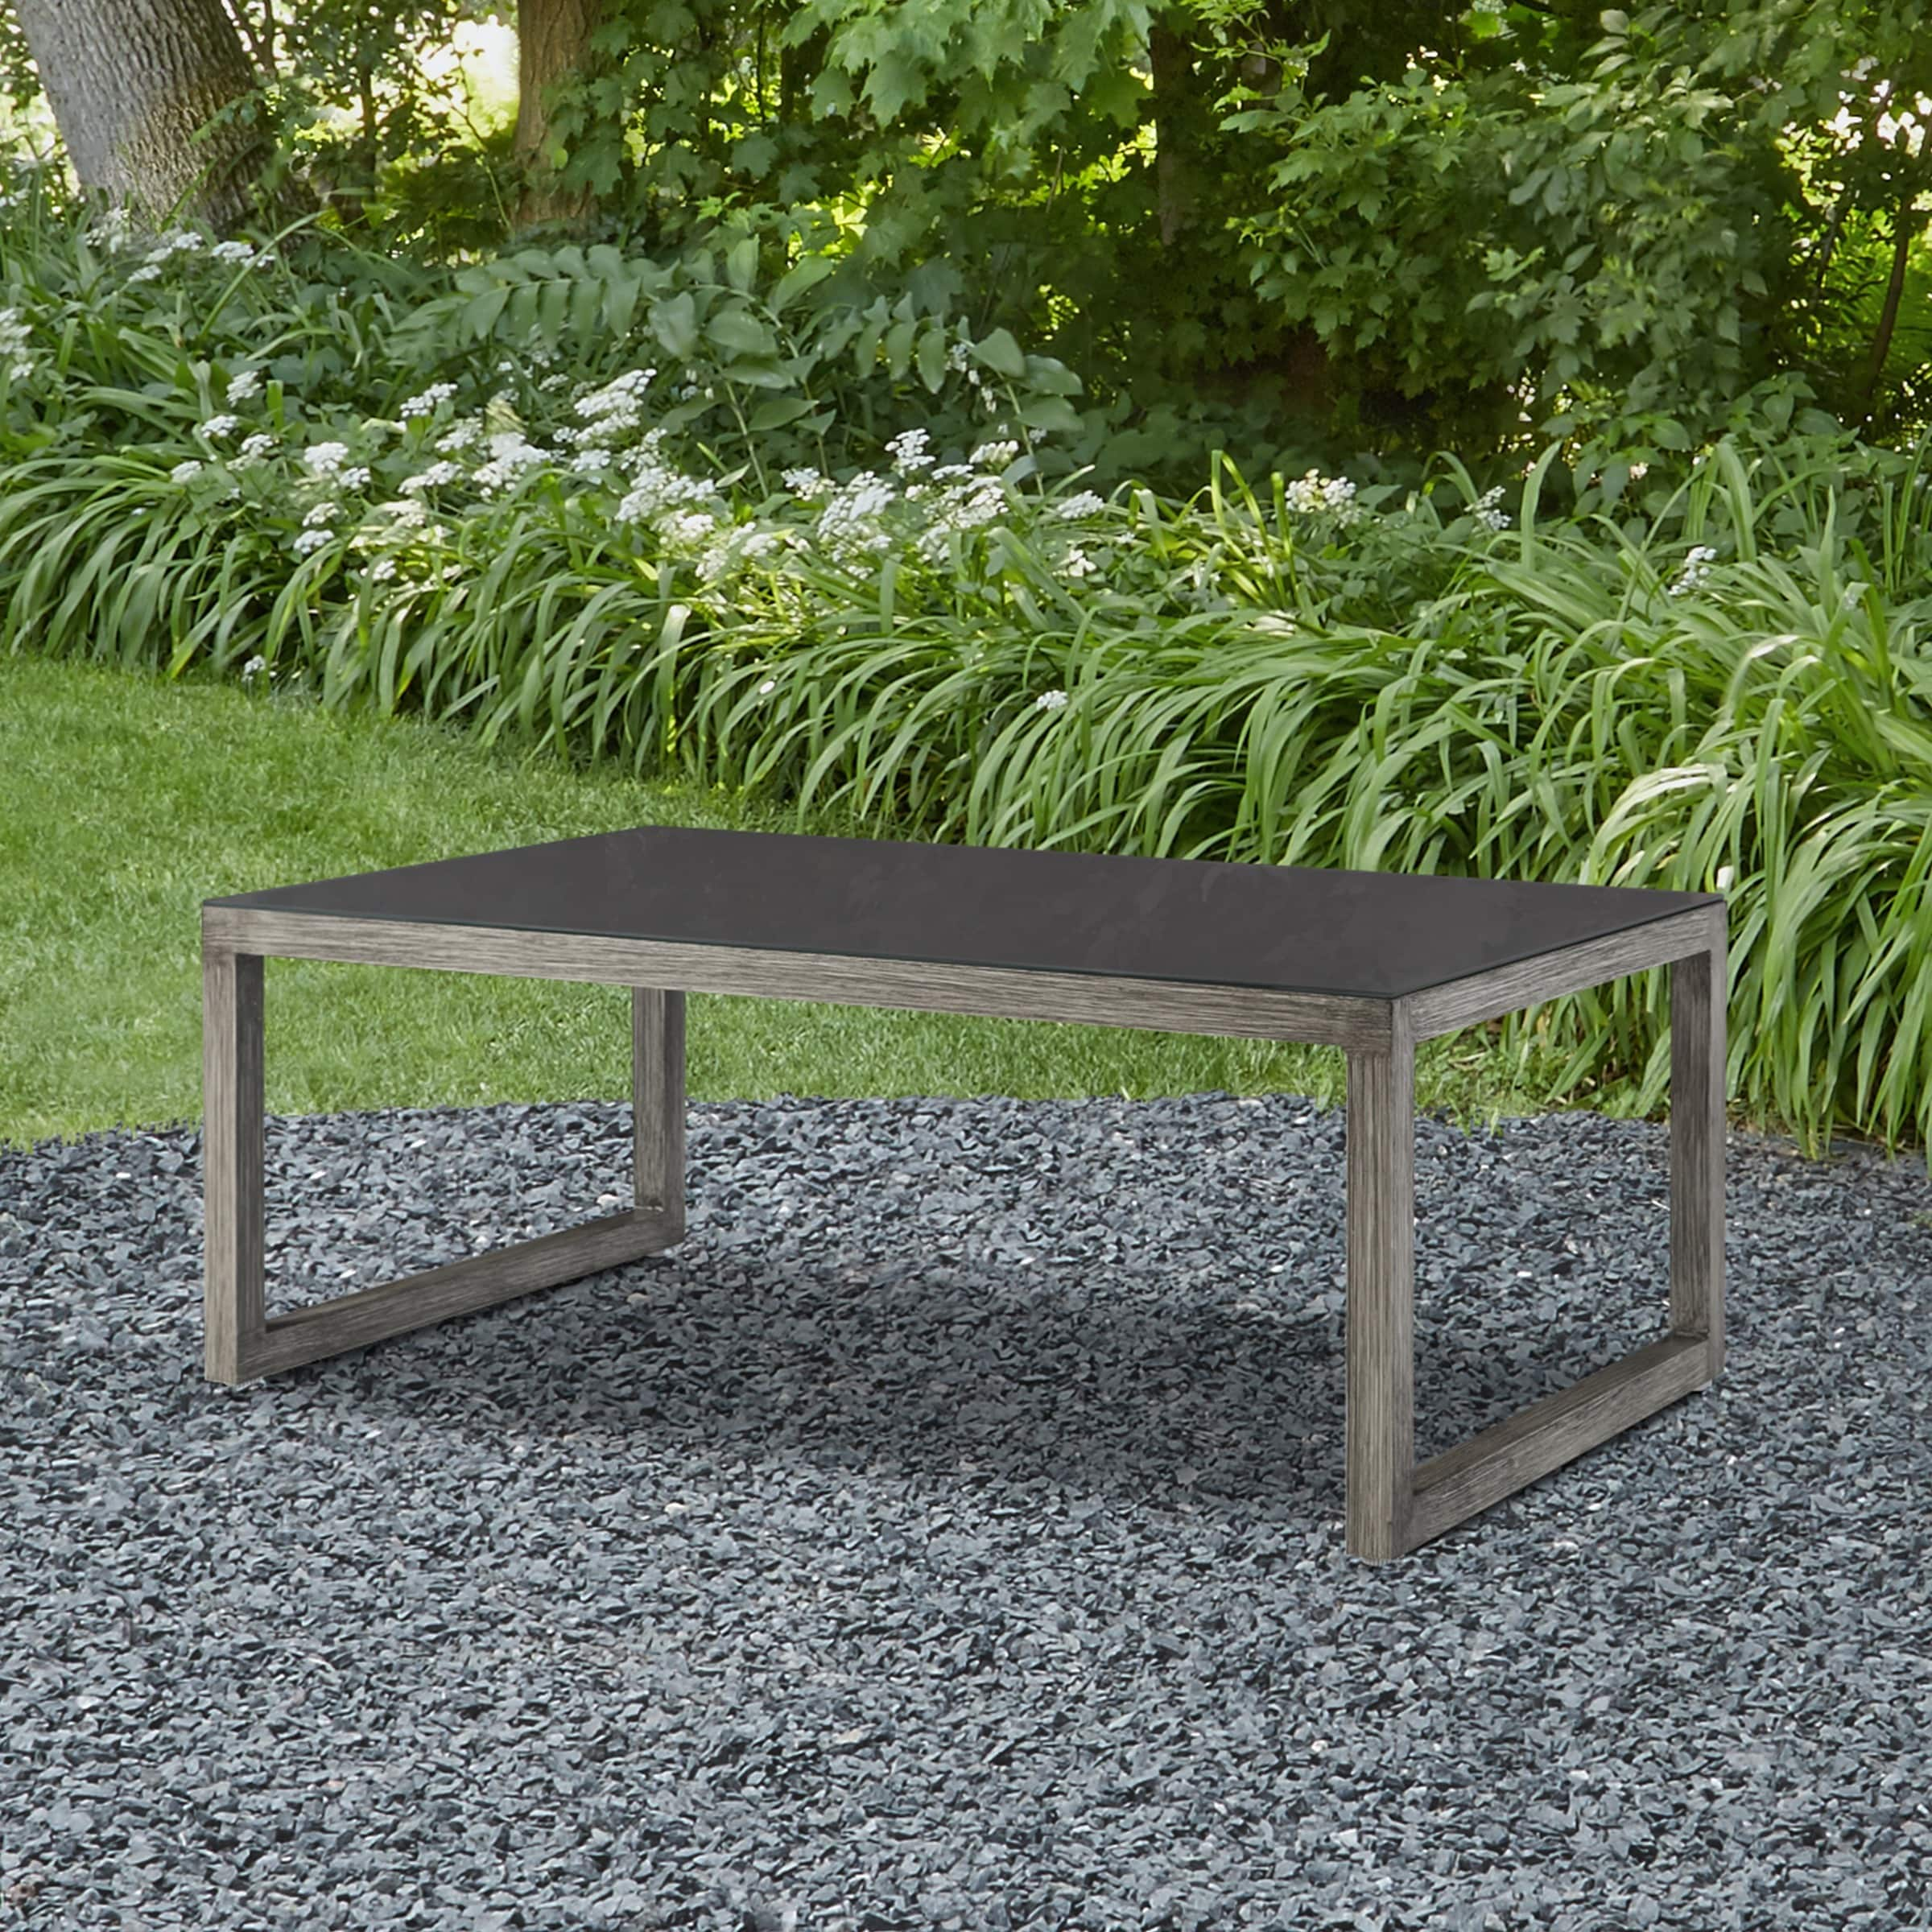 Coffee table converts to dining table furniture compare prices real flame monaco outdoor glass top coffee table beige o geotapseo Gallery